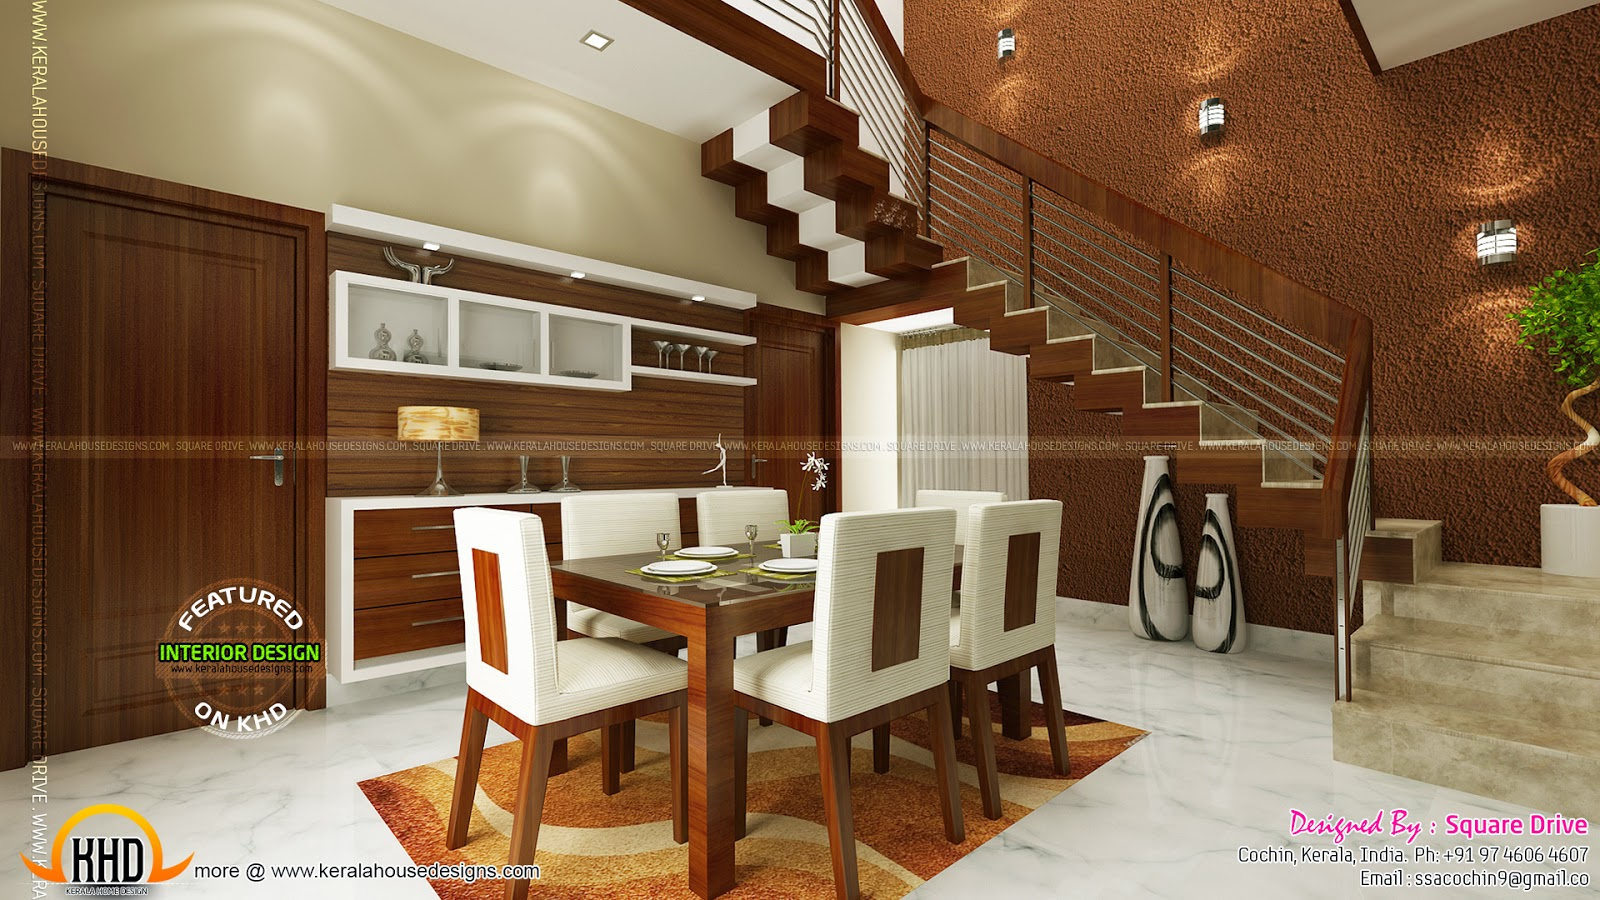 Cochin interior design kerala home design and floor plans for Interior designs in kerala